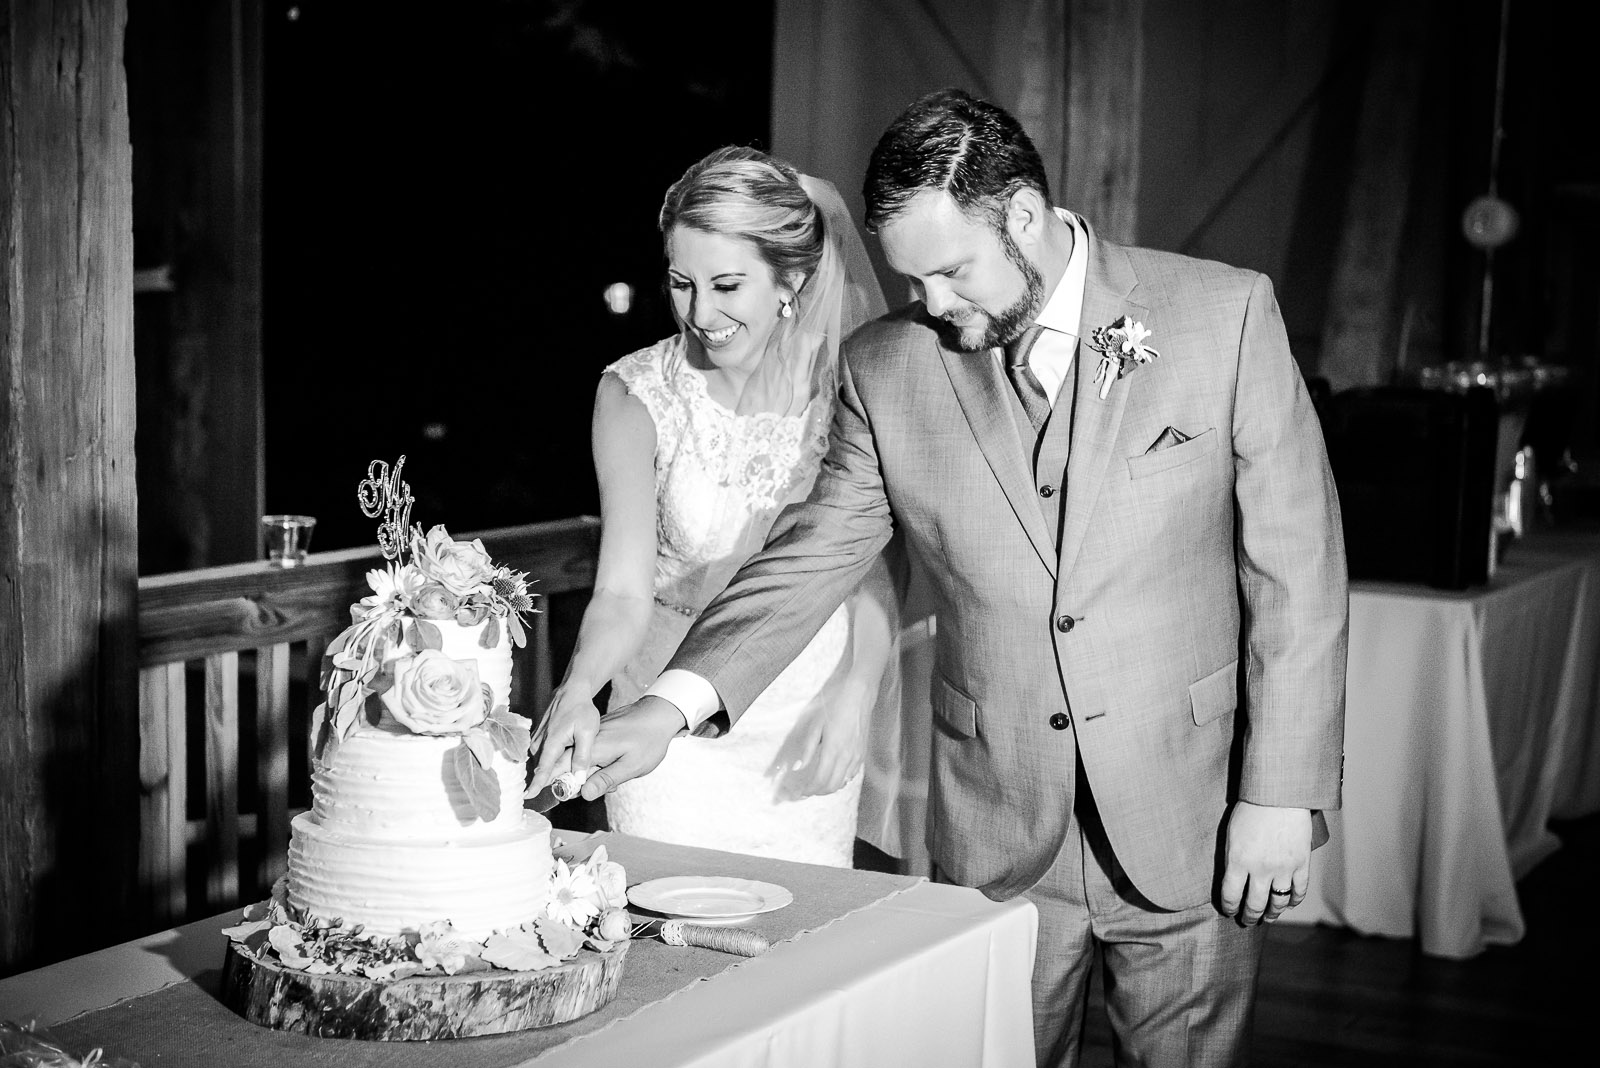 Eric_and_Christy_Photography_Blog_Wedding_Kelly_Matt-67